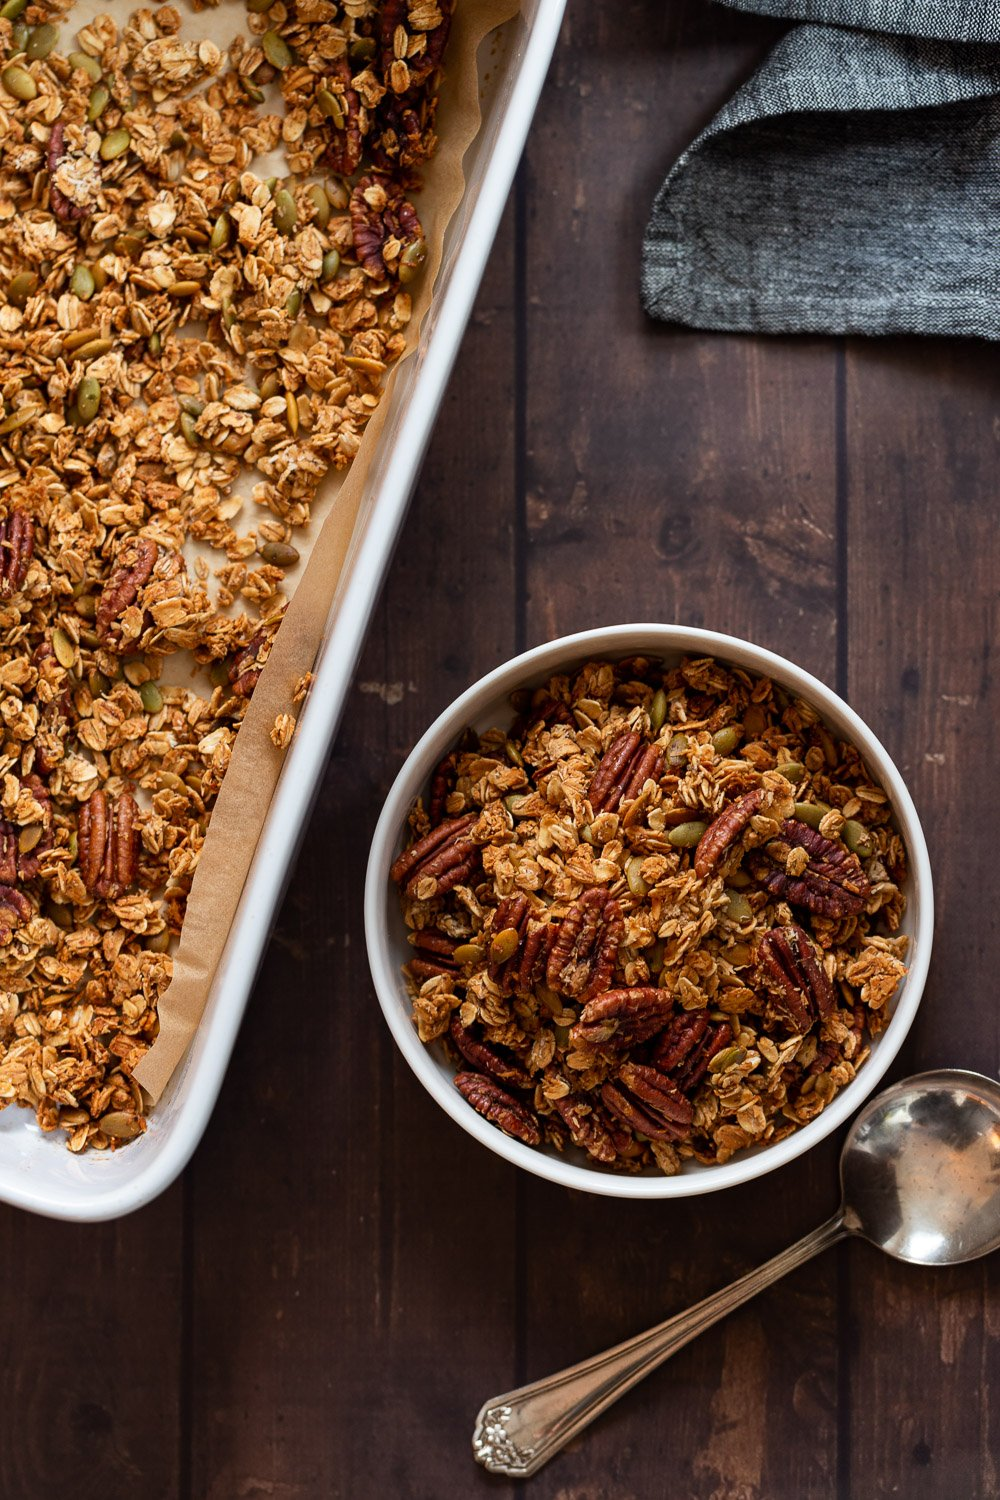 Our Maple Pecan Granola in white bowl and baking dish